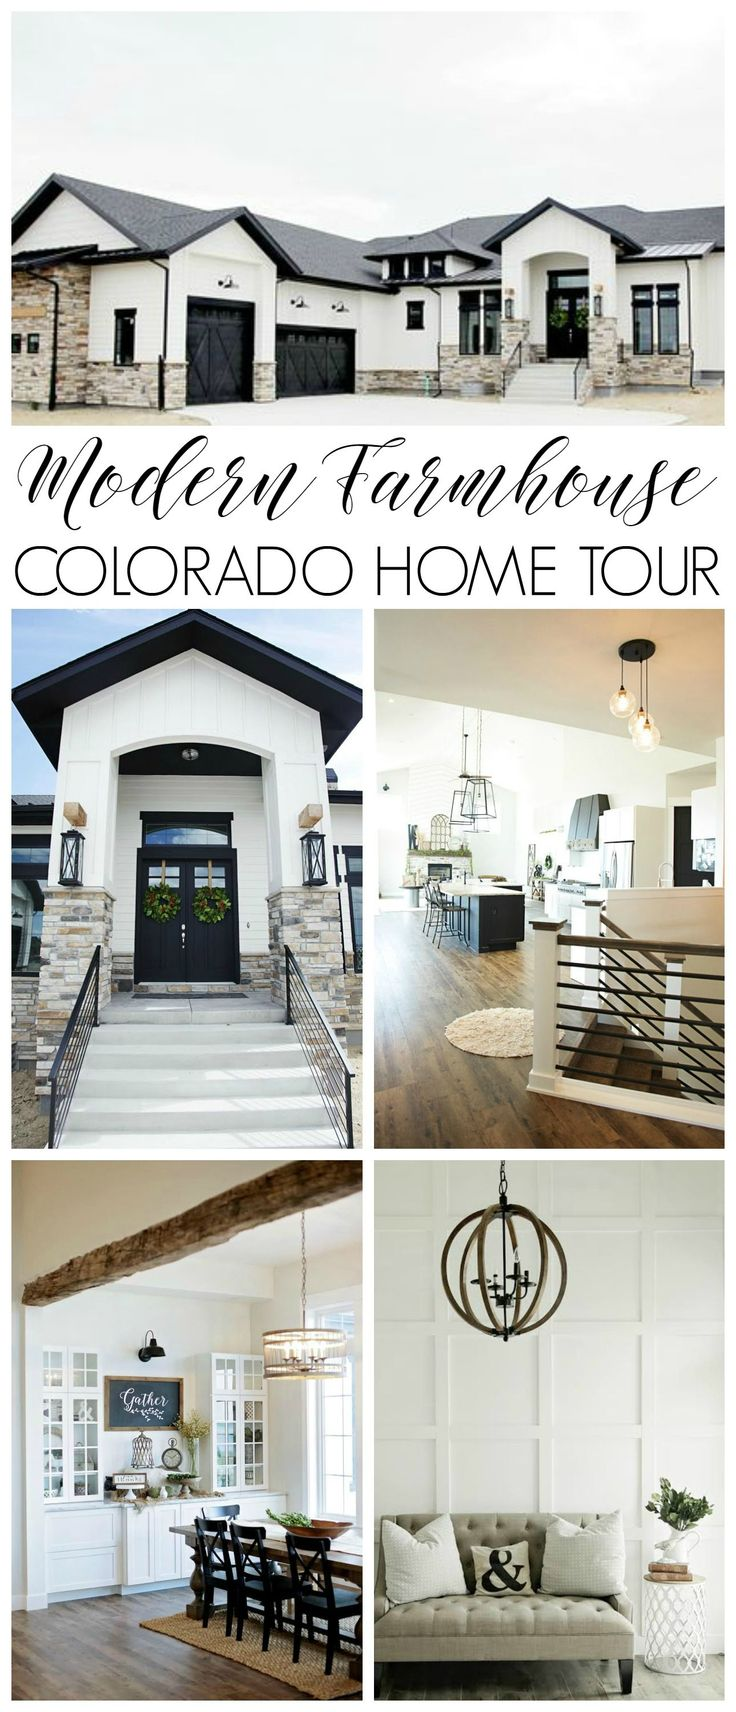 Best 25 modern farmhouse ideas on pinterest modern for Modern farmhouse style